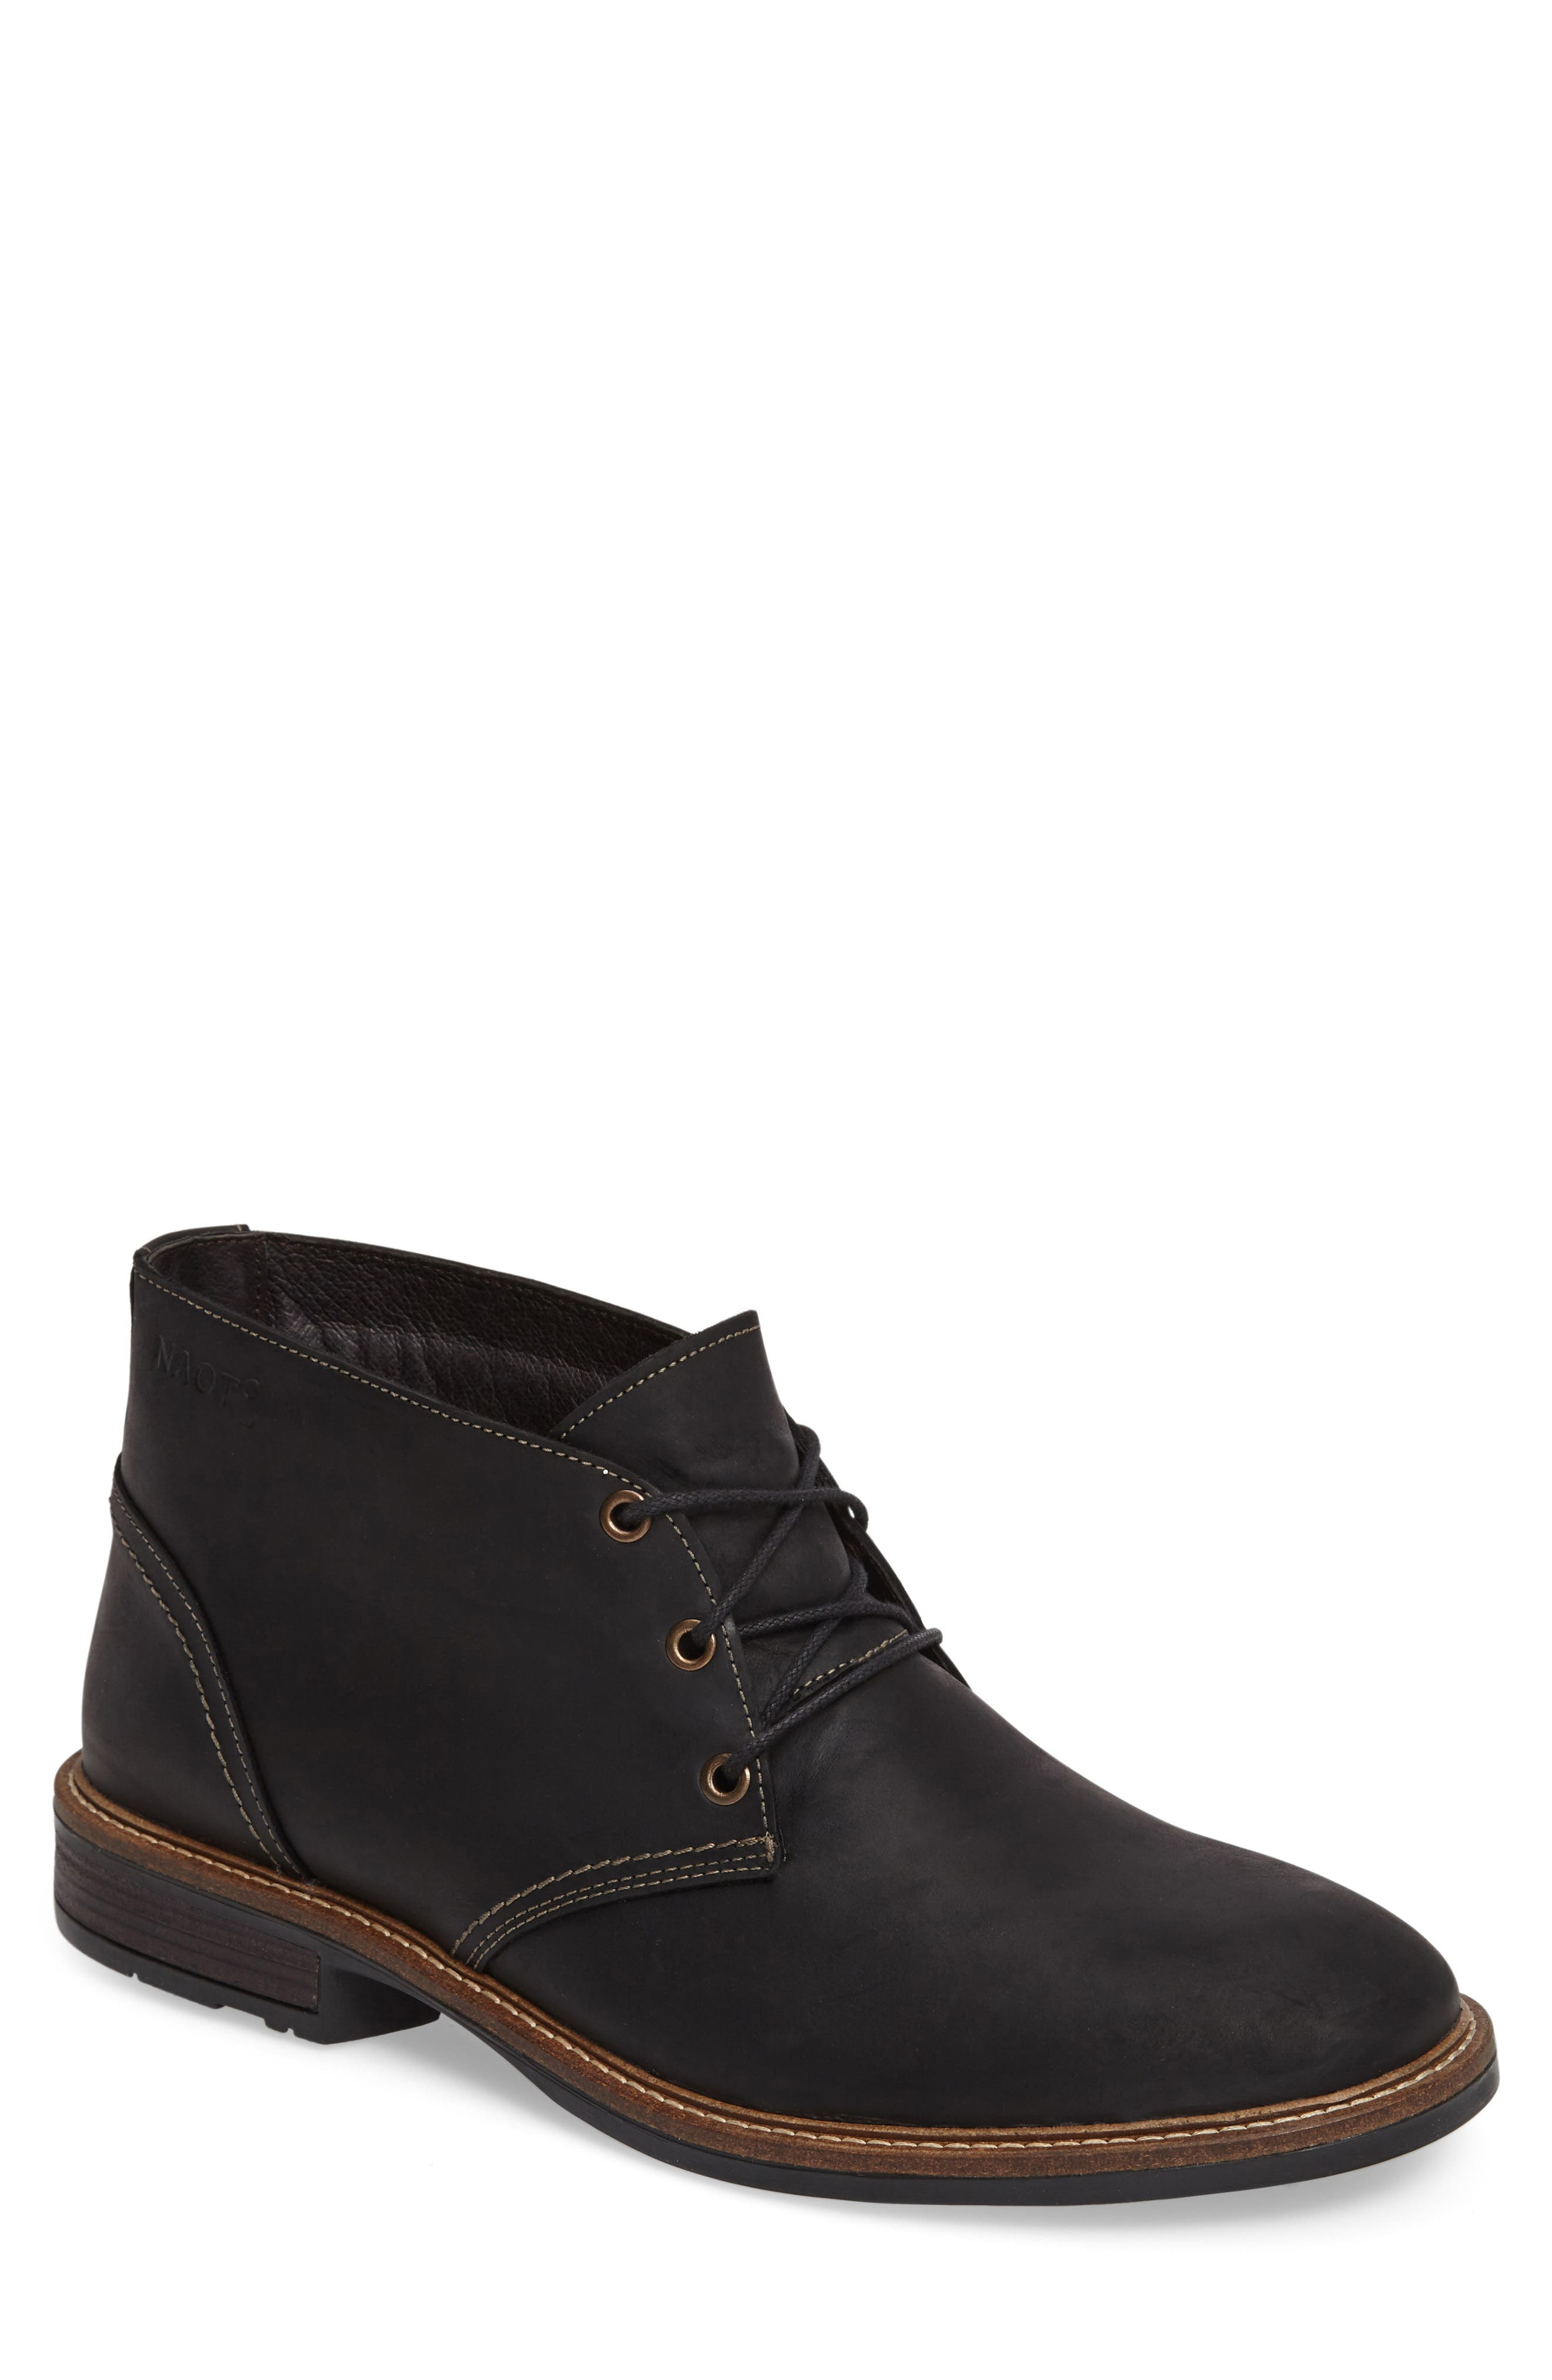 Pilot Chukka Boot,                         Main,                         color, COAL NUBUCK LEATHER